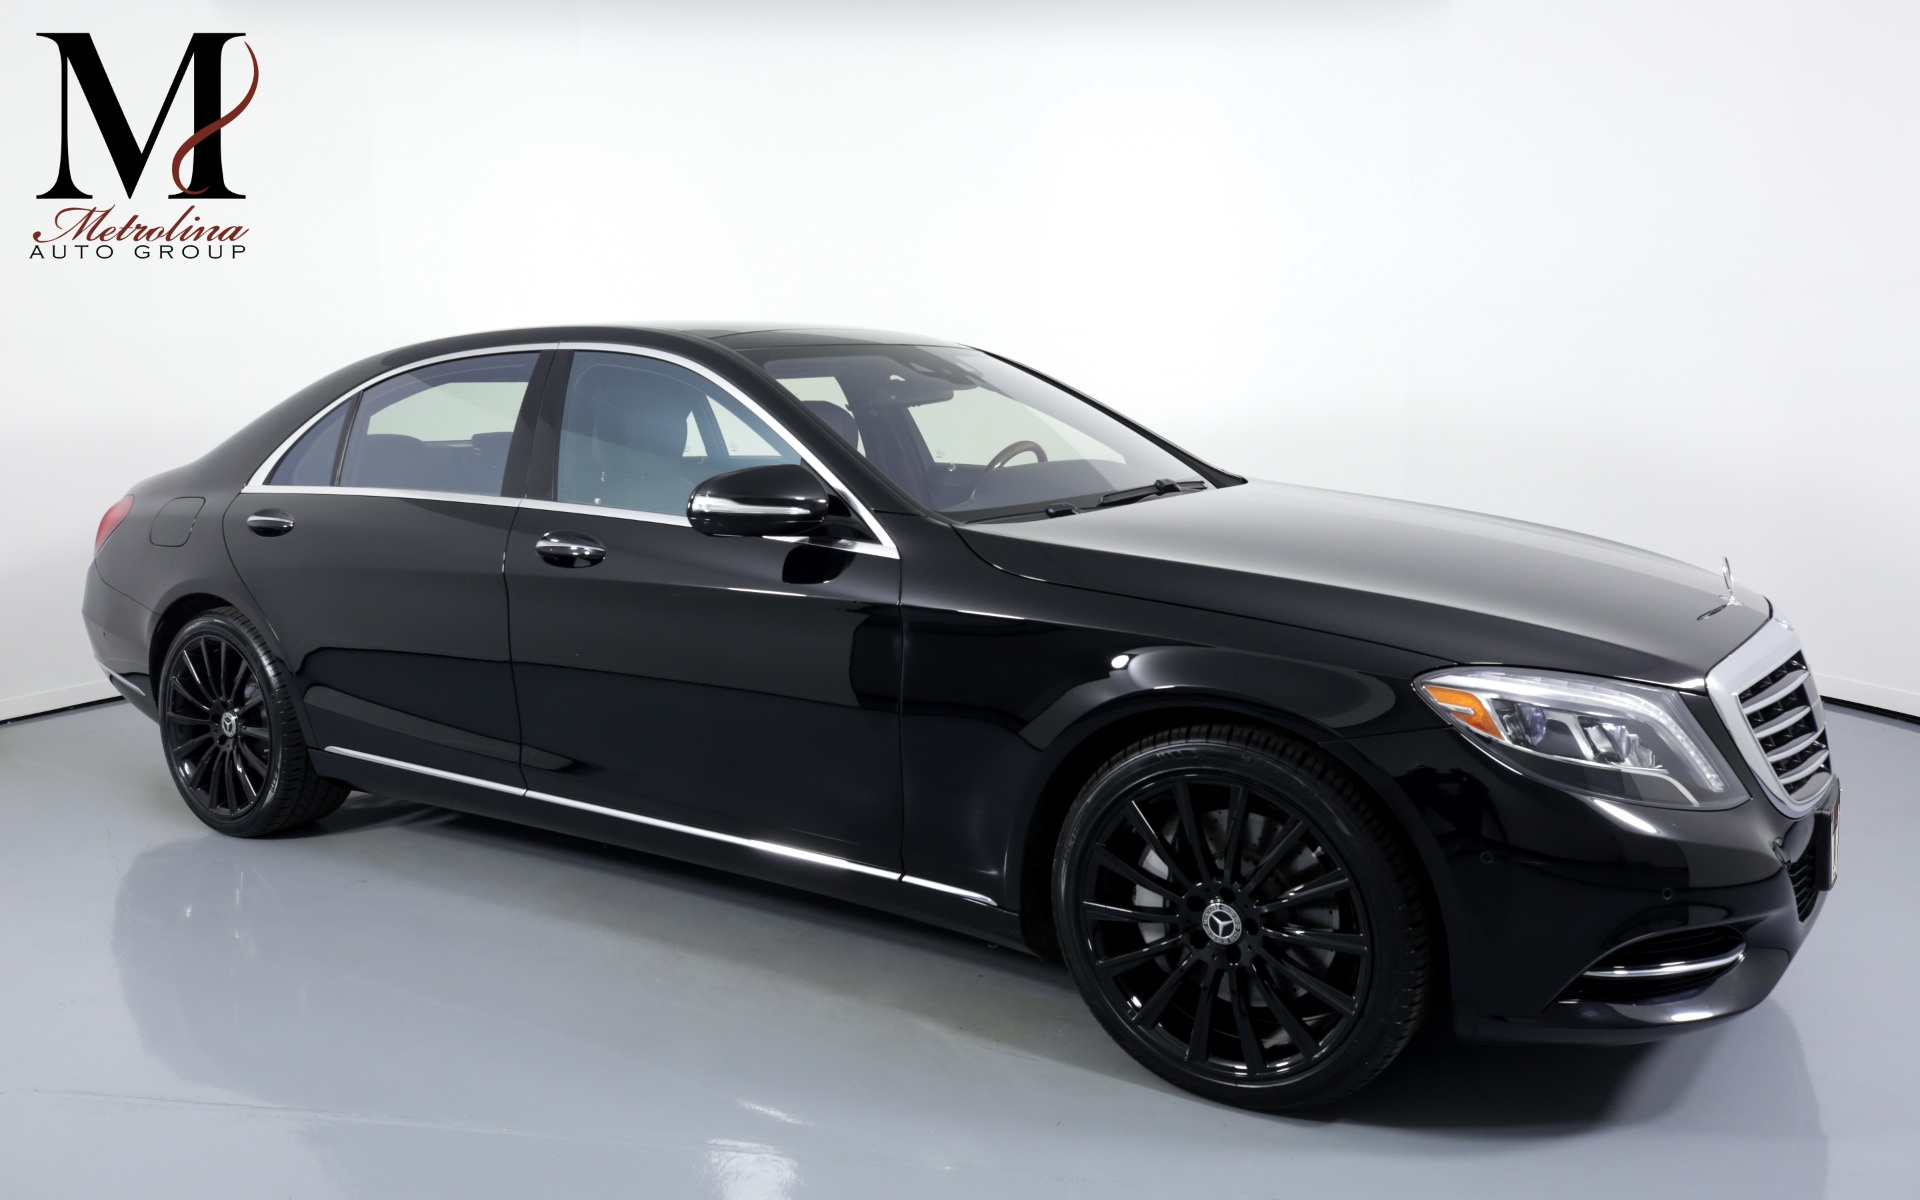 Used 2017 Mercedes-Benz S-Class S 550 4MATIC for sale $54,996 at Metrolina Auto Group in Charlotte NC 28217 - 1